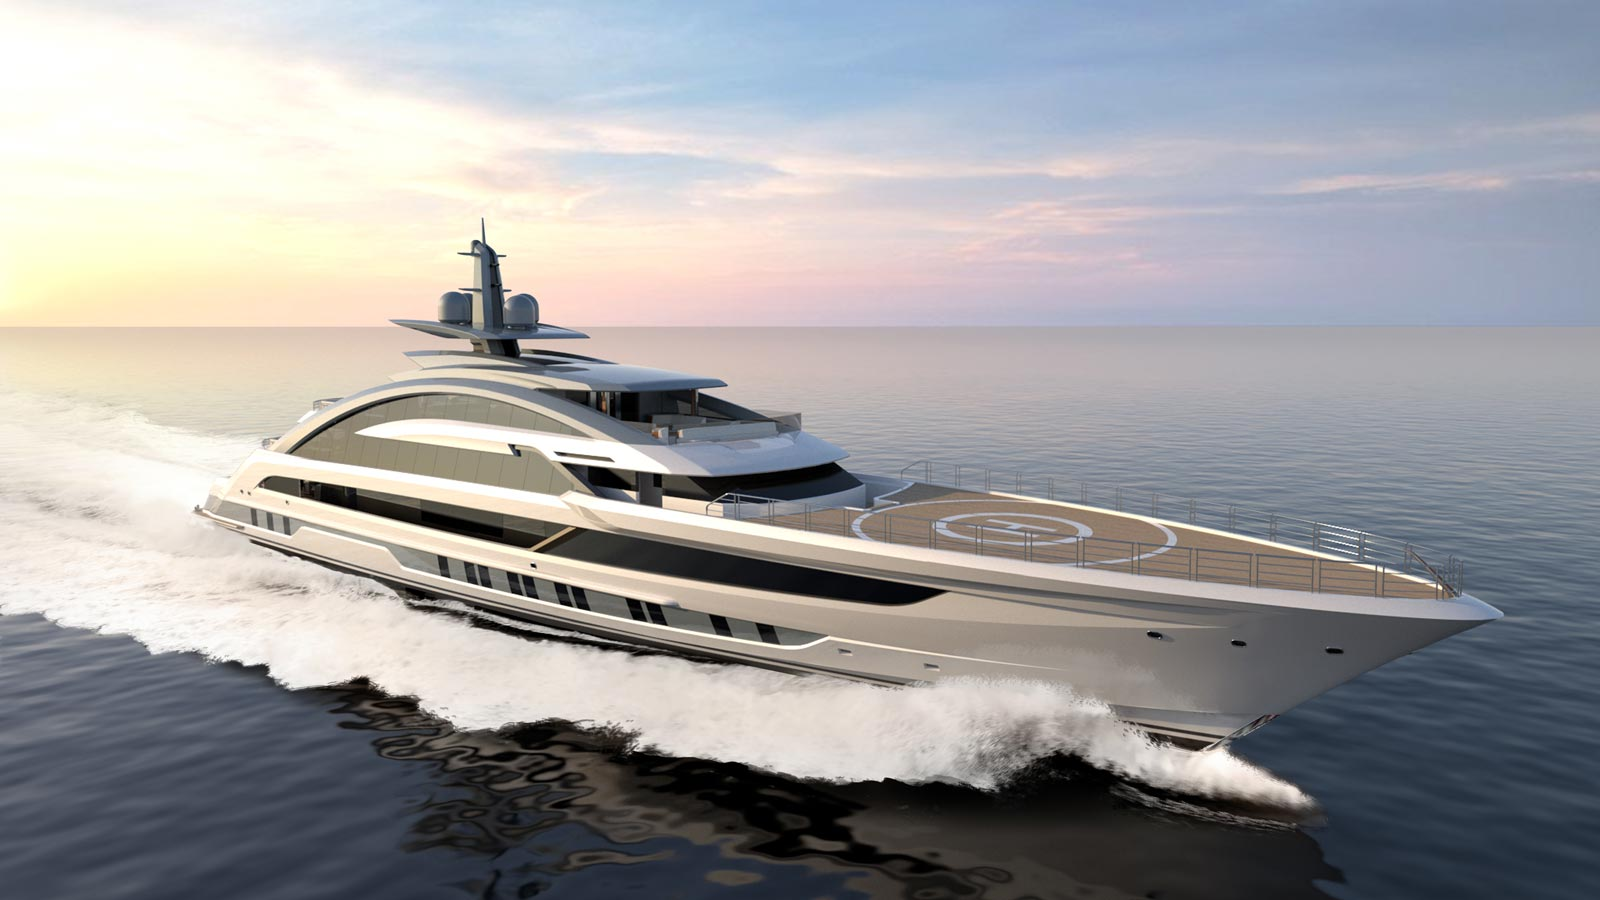 Heesen Yachts - Building refined luxurious superyachts